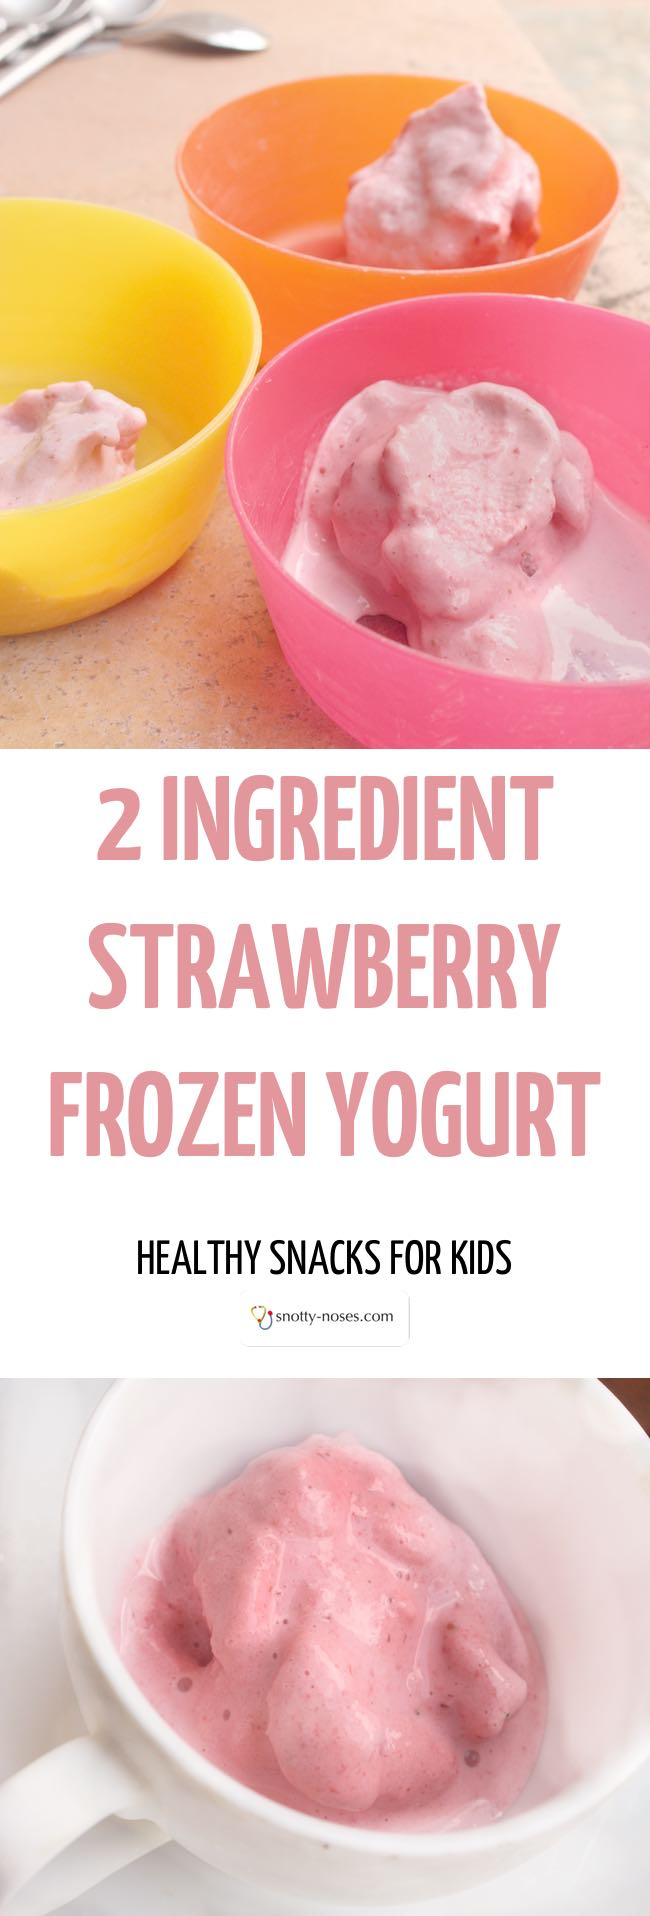 Who said that strawberry frozen yogurt was unhealthy? This is a really easy and really healthy recipe for frozen yogurt that your kids and friends will love. Just 2 ingredients, no added sugar and ready in minutes. I'm happy for my kids to eat this every day!.